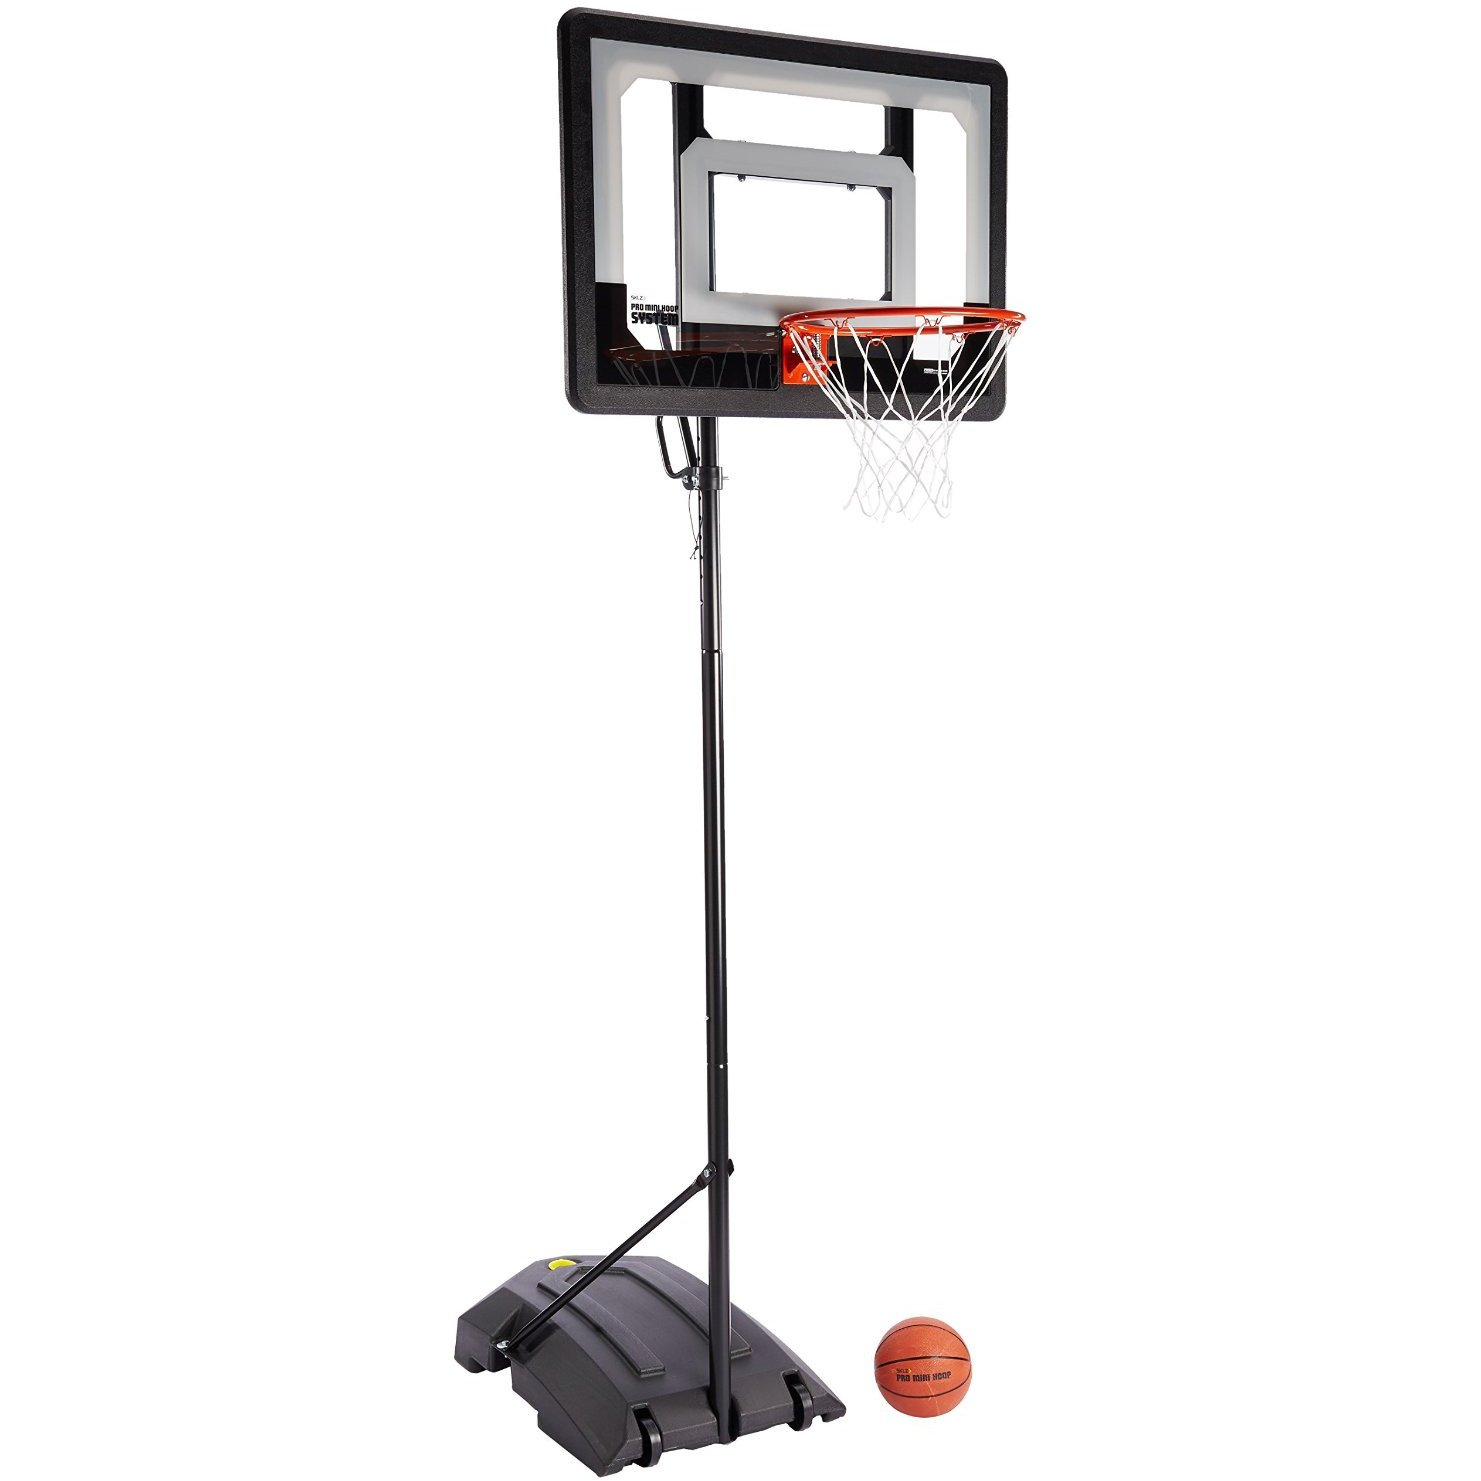 SKLZ Pro Mini Hoop Basketball System with Adjustable-Height Pole and 7-Inch Ball by SKLZ